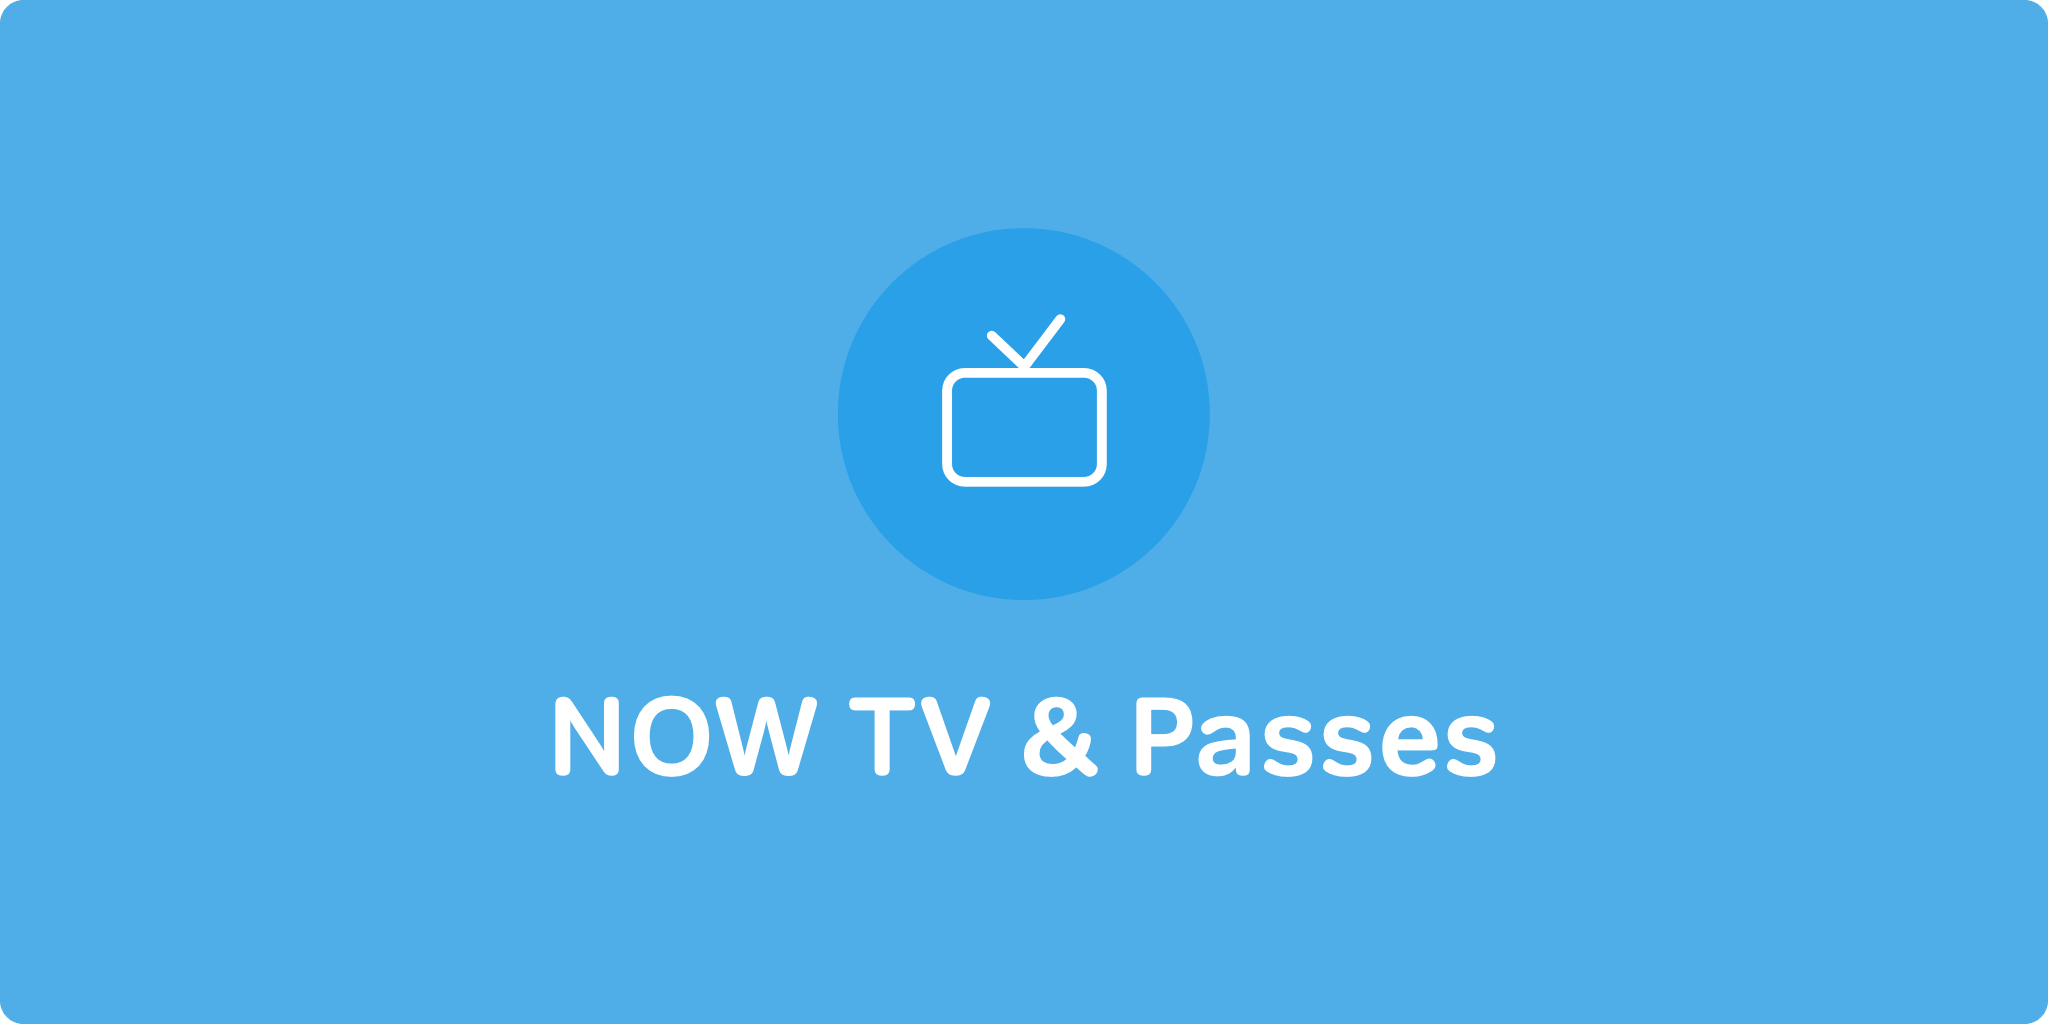 How Do I Get Passes With My Apple TV?